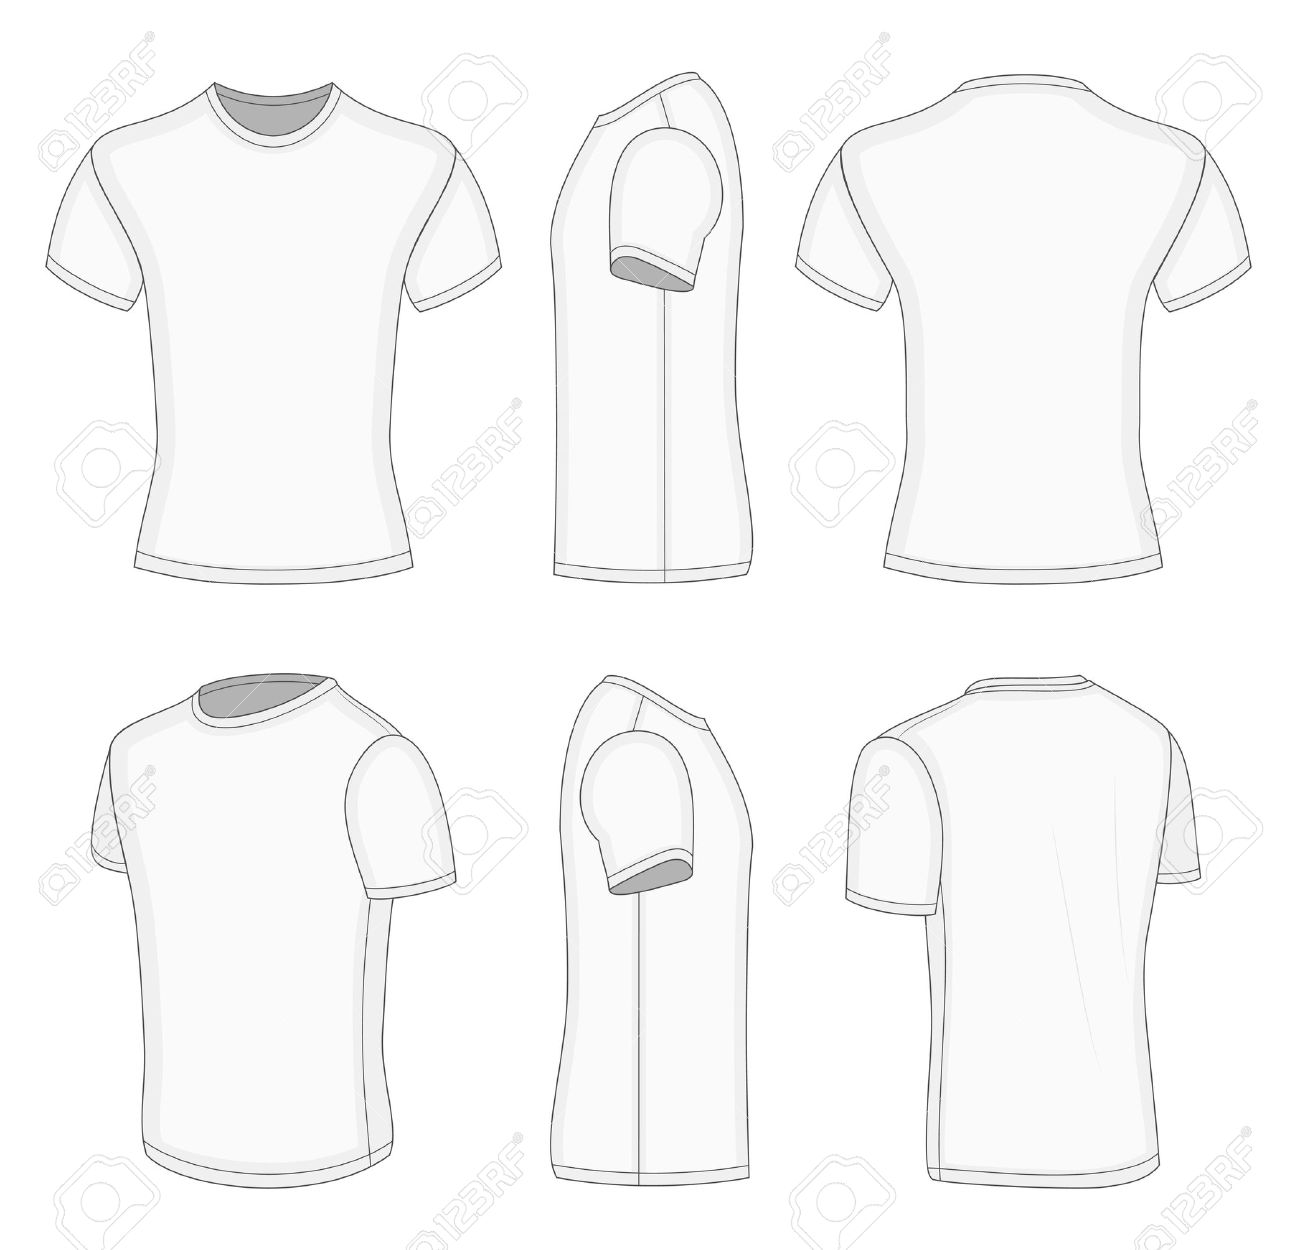 White t shirt front and back template - Men S White Short Sleeve T Shirt Design Templates Front Back Half